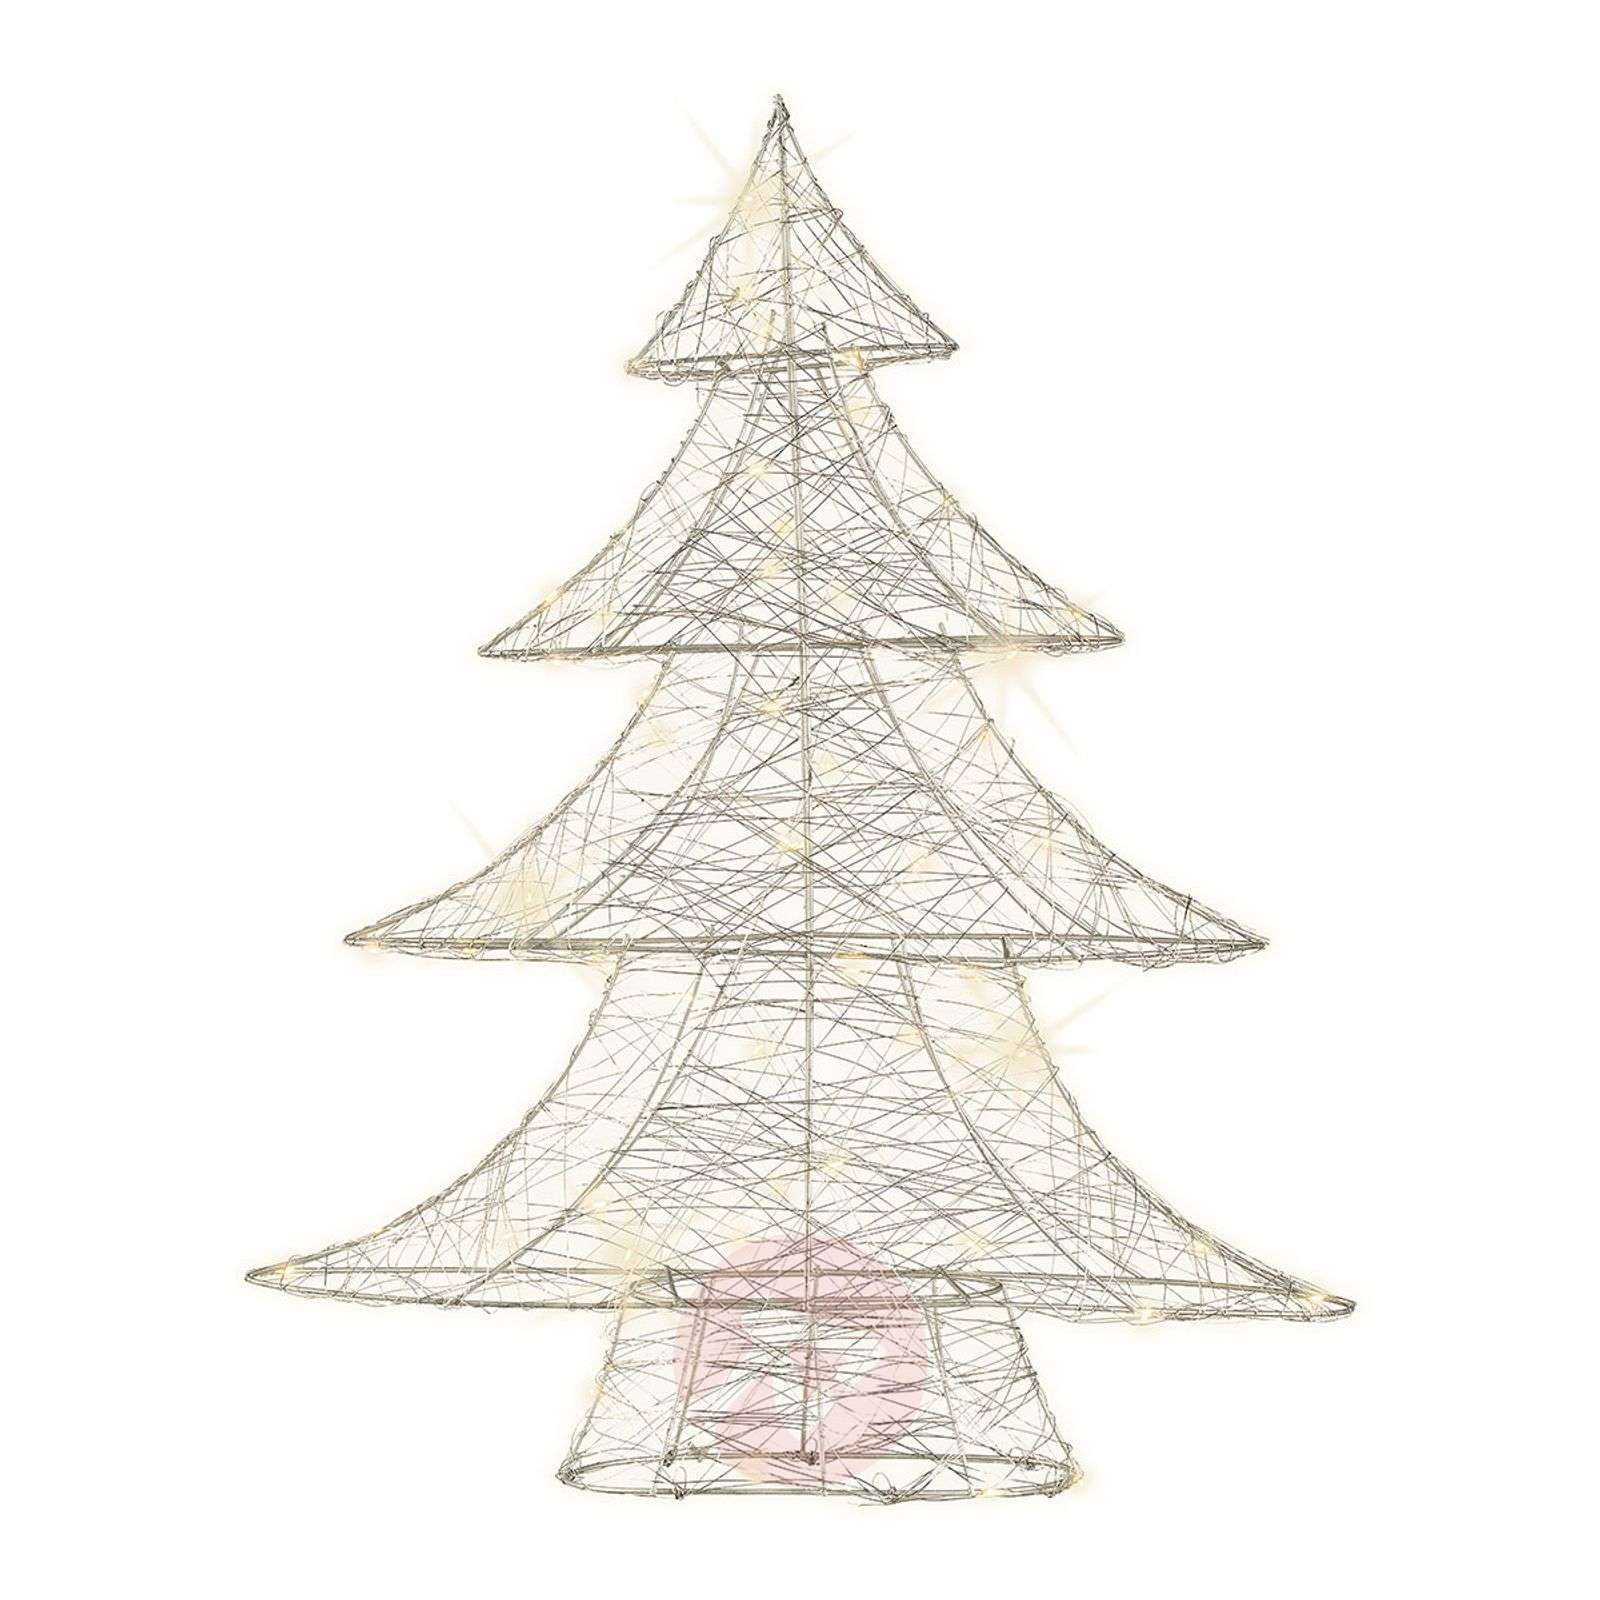 For indoors silver wire tree with micro LEDs-5527170-01